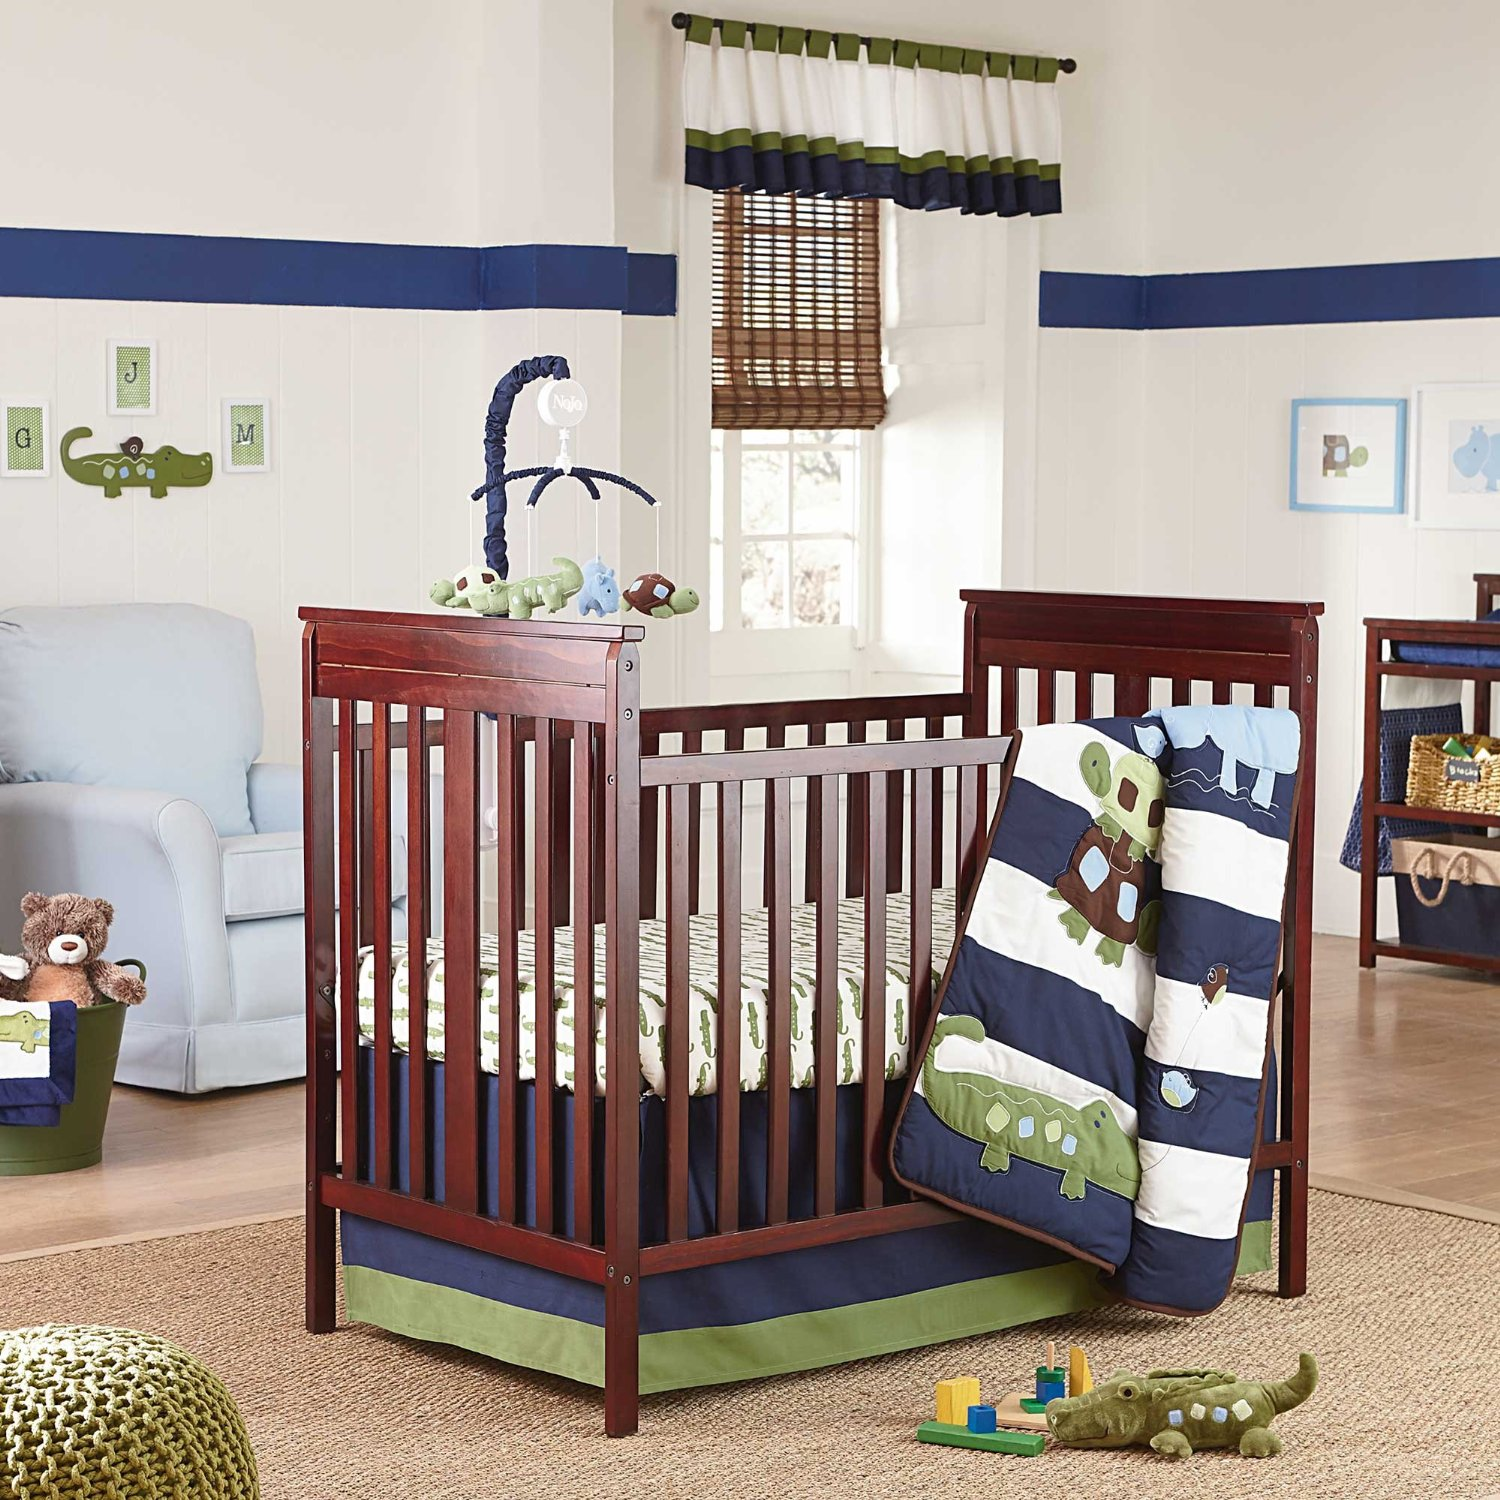 Nojo Alligator Blues Baby Bedding Collection